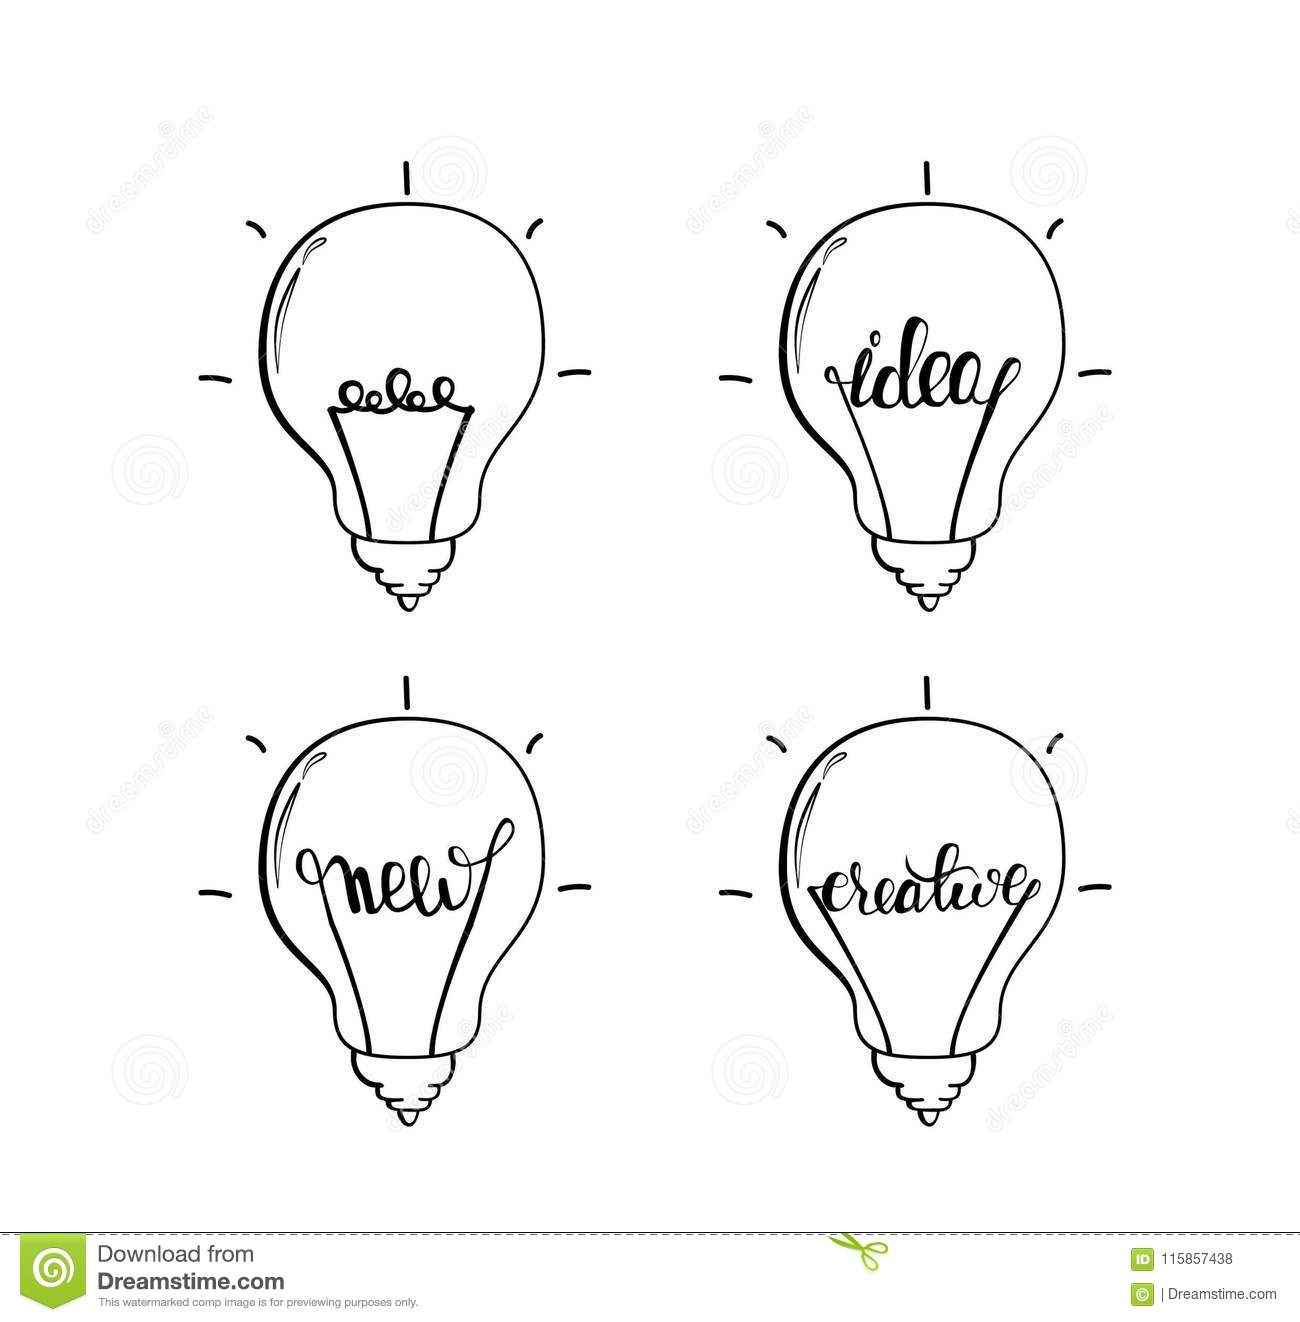 Light bulb logos black and white color